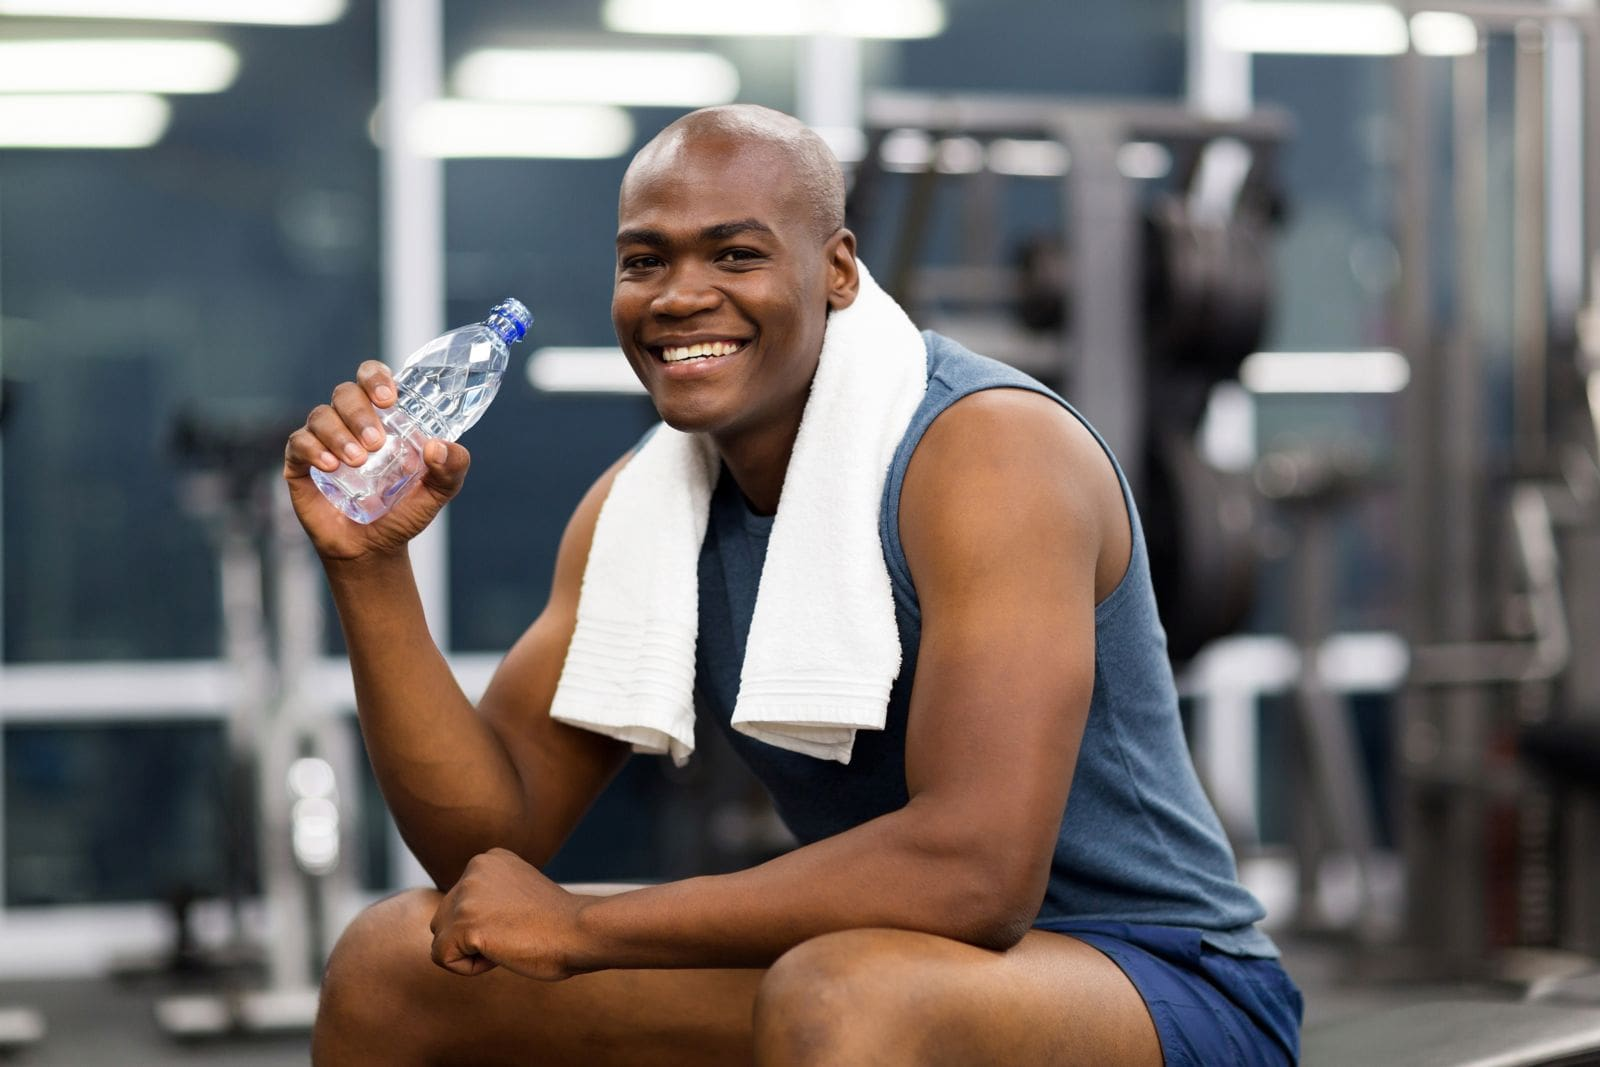 a man sitting in a gym wearing workout clothes and smiling while holding a water bottle